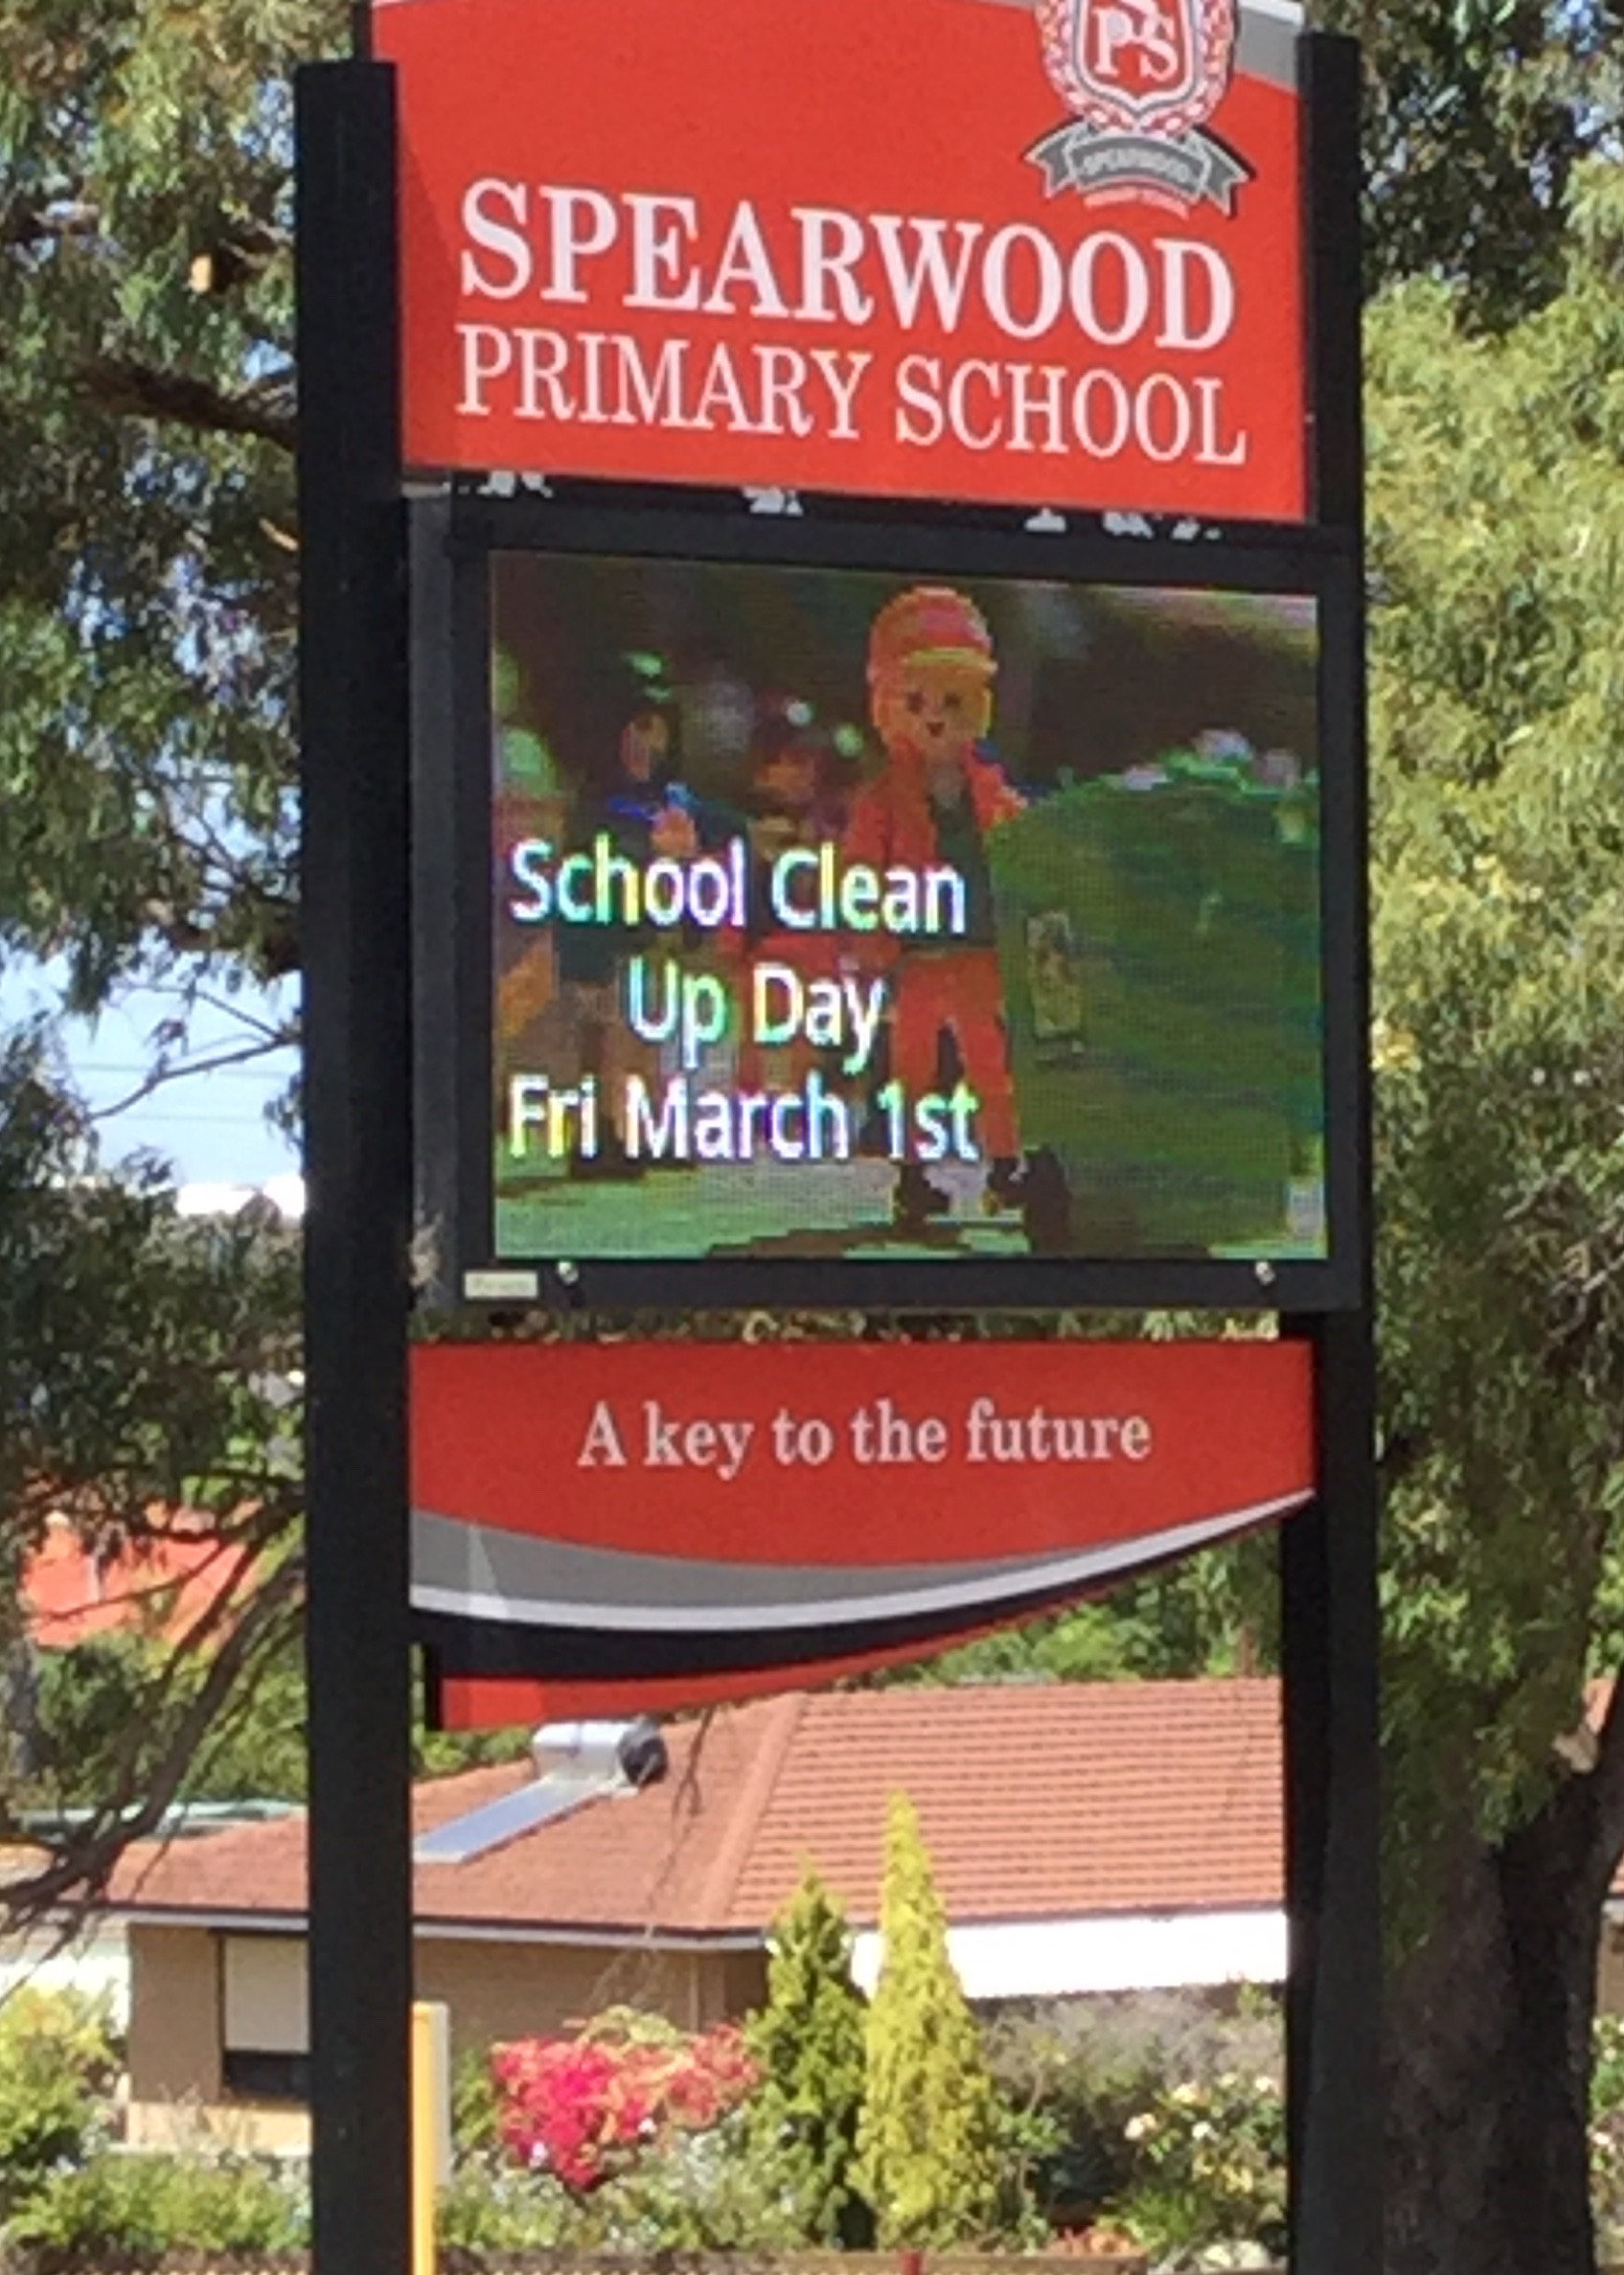 School Clean Up Day